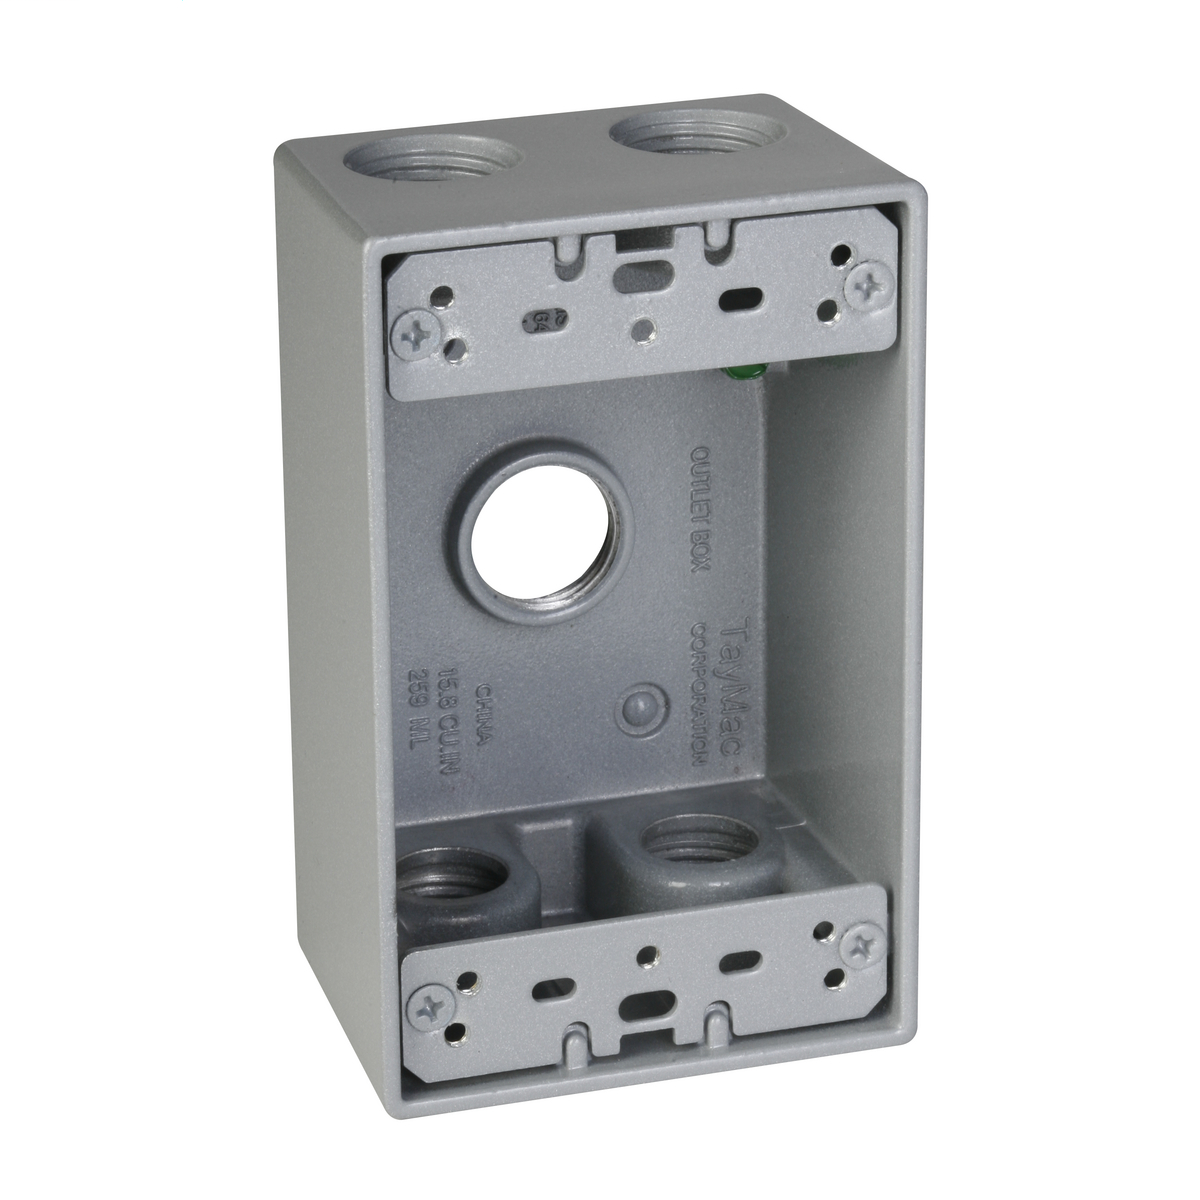 1-Gang 5-Hole 1/2 in. Outlet Box - Silver SB550S